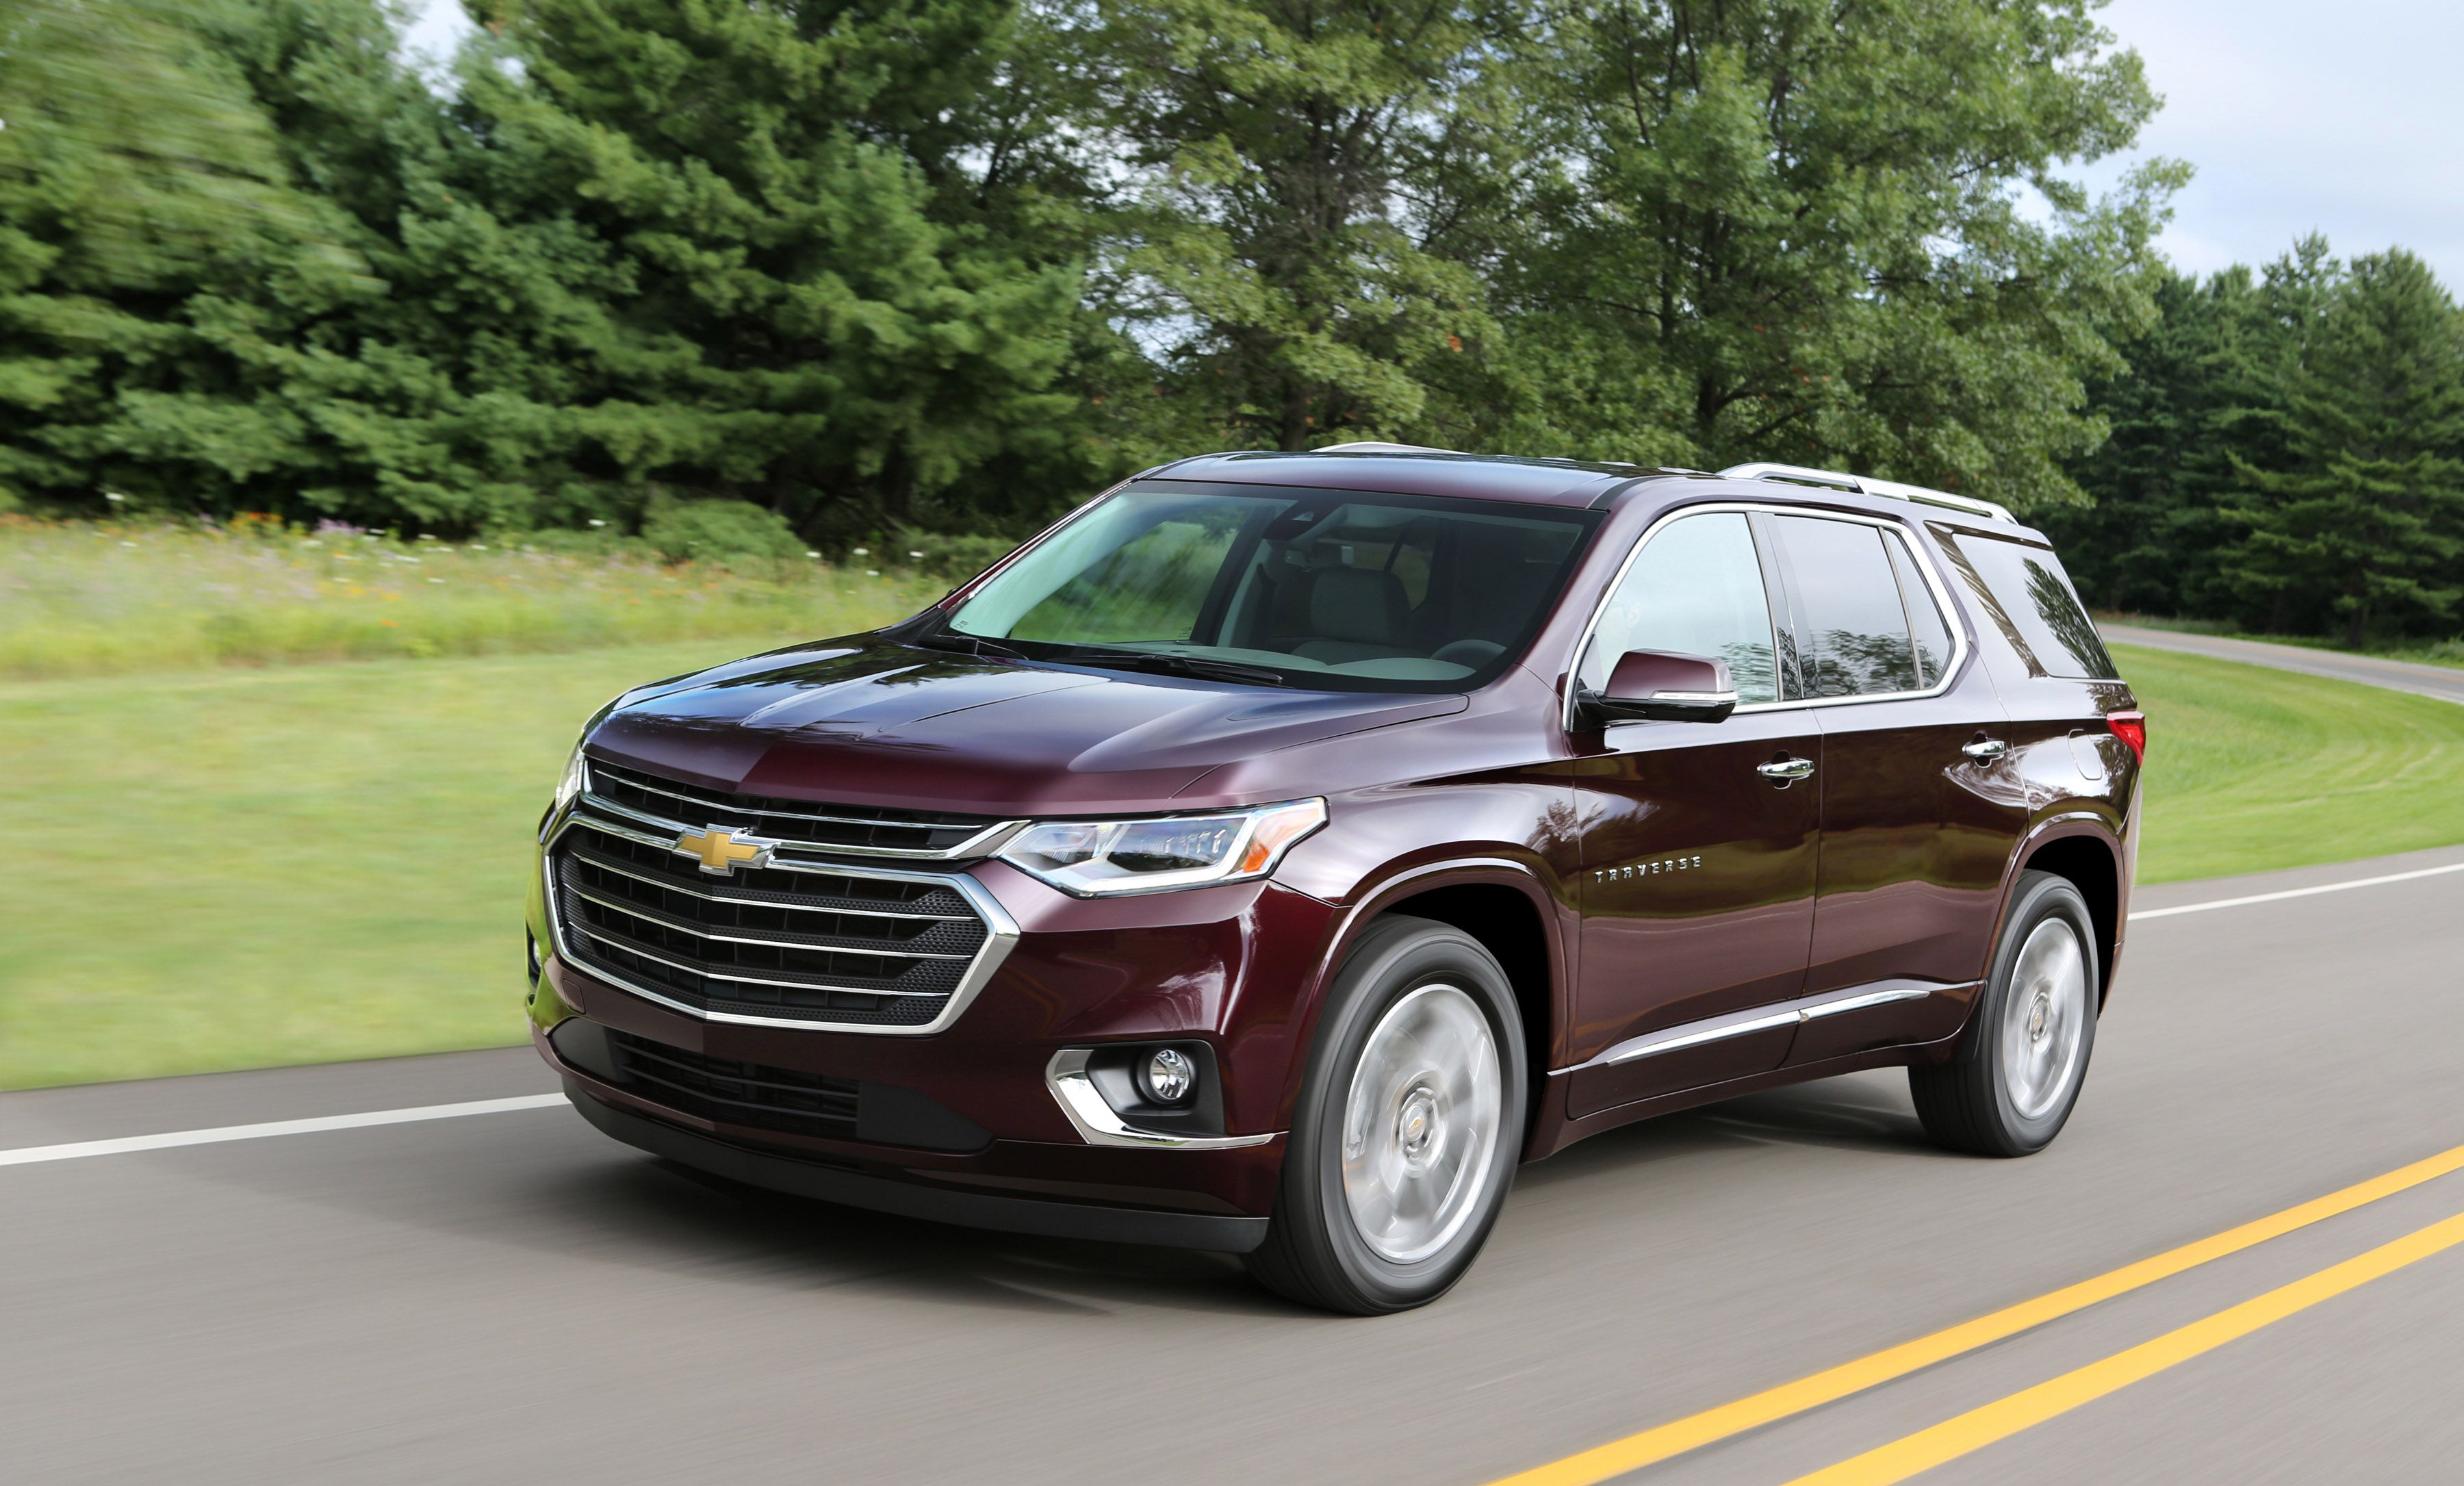 2018 Chevrolet Traverse Financing Near Merrillville In